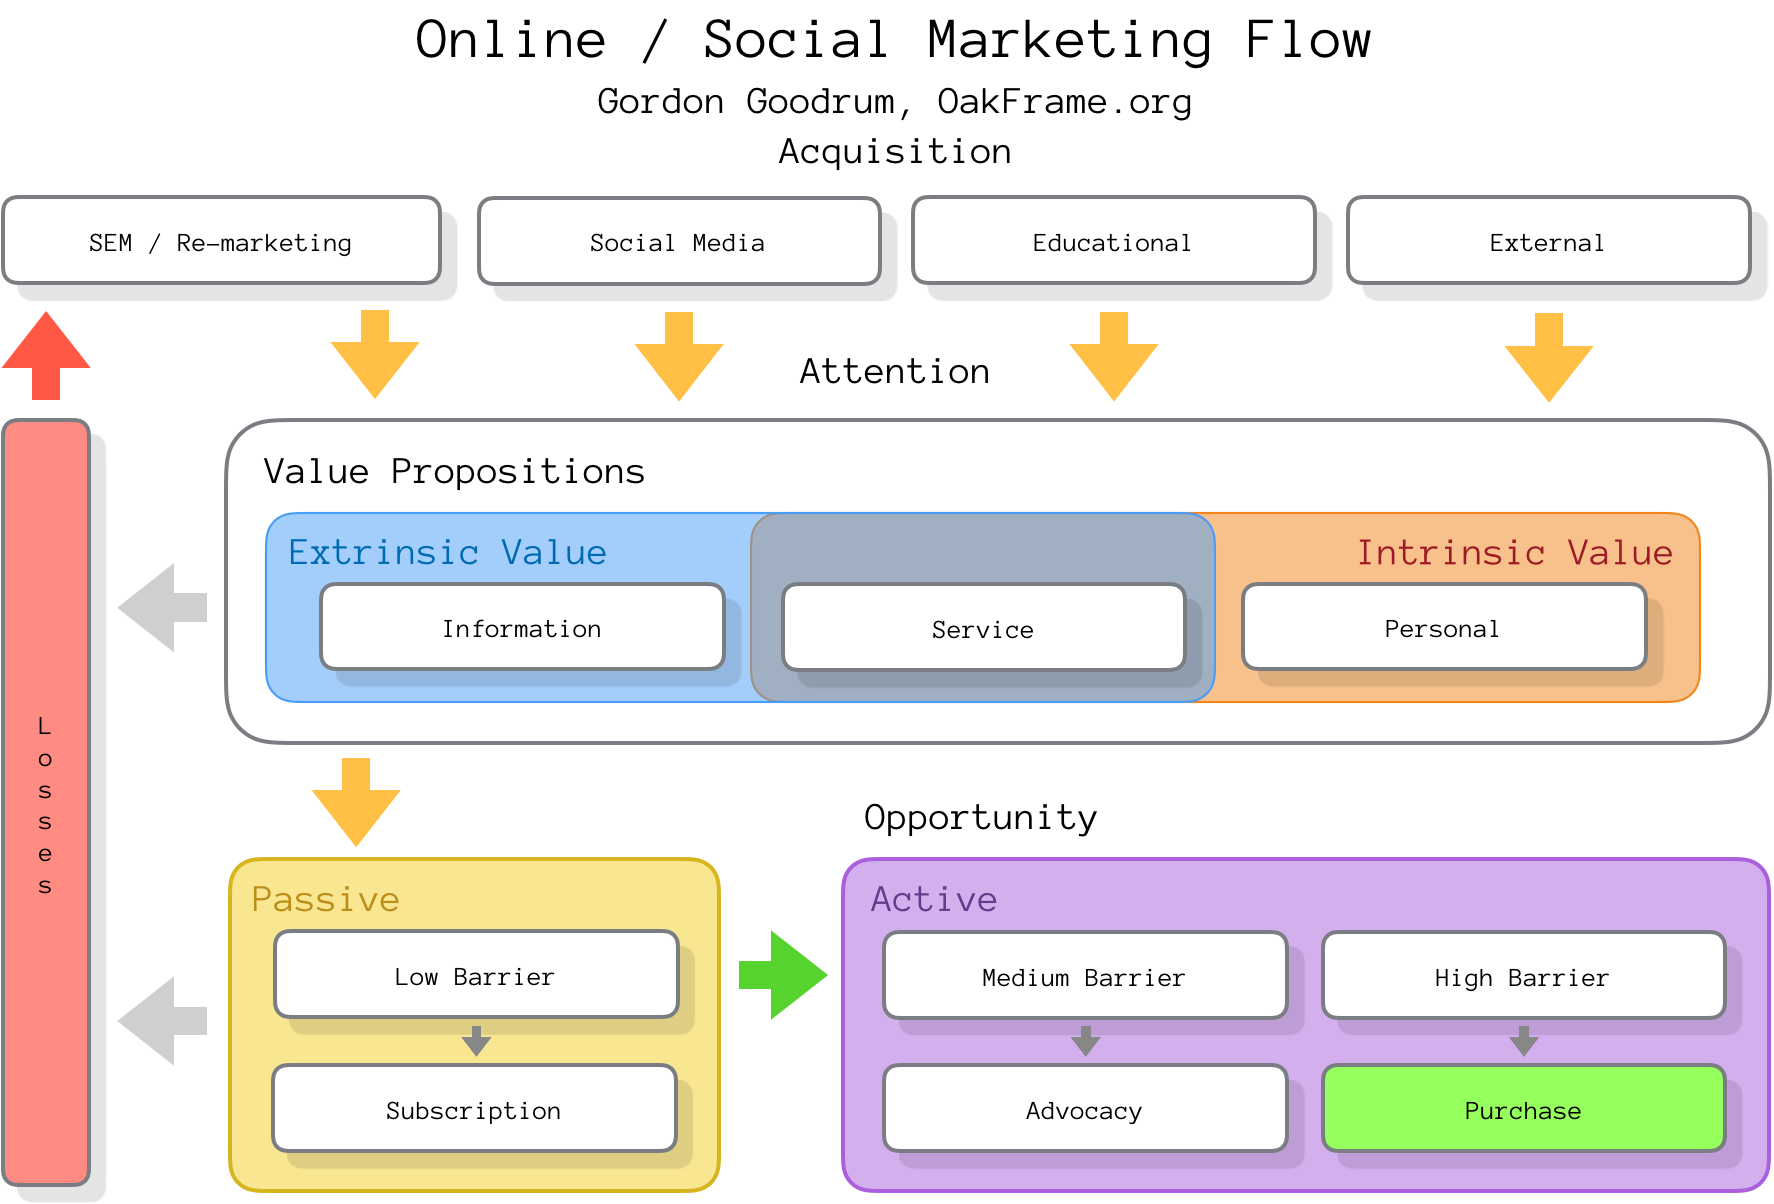 Gordon Goodrum's online and social marketing flow diagram